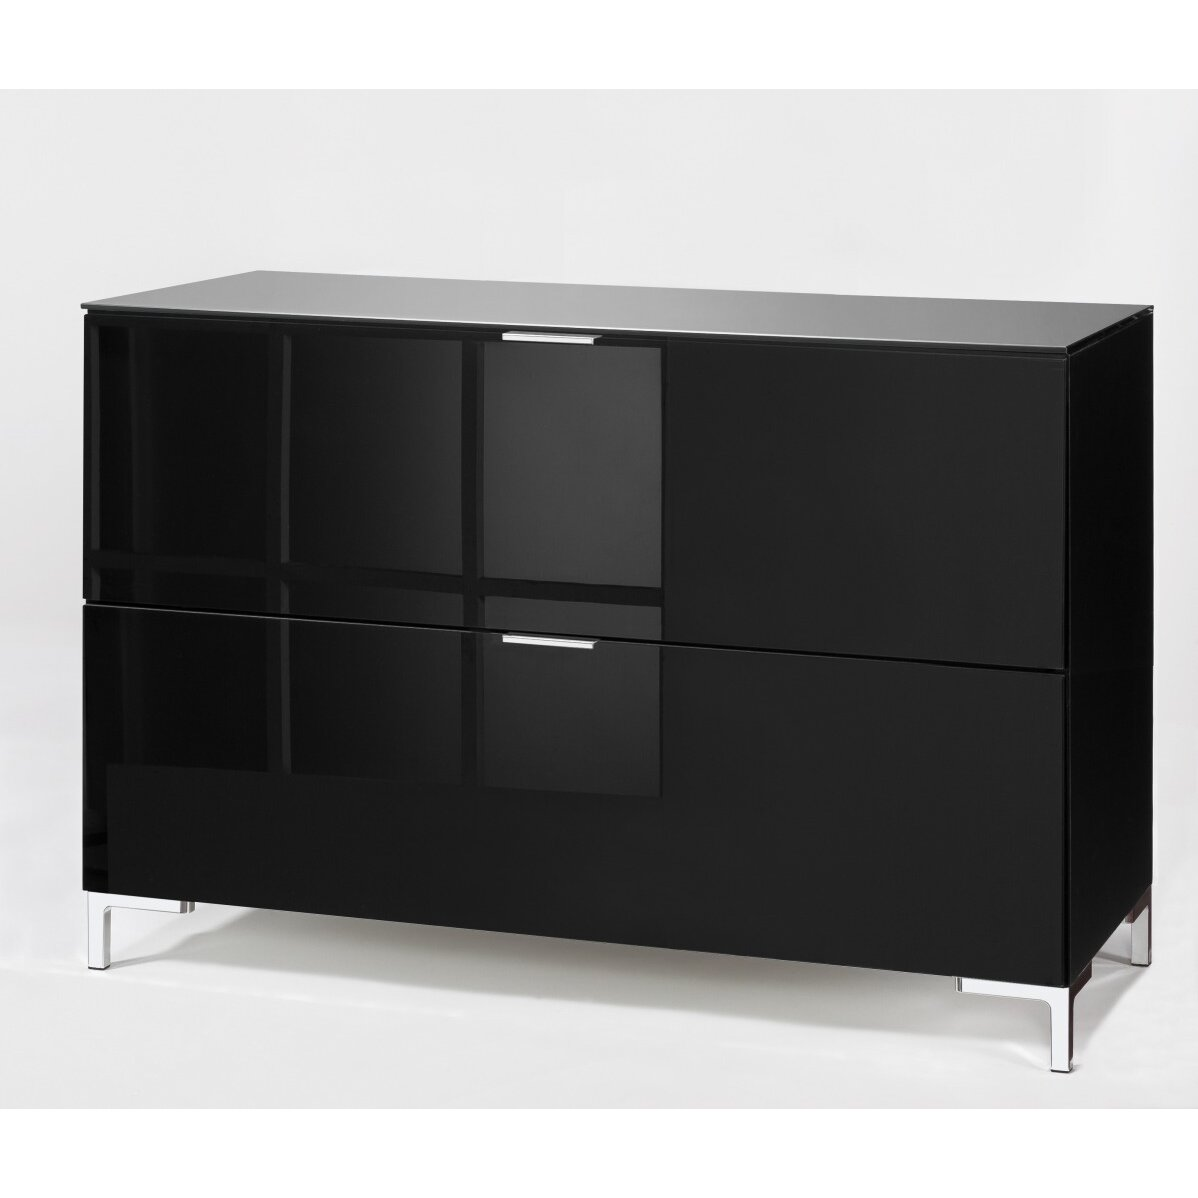 cs schmal tv schrank cleo reviews von manufacturer. Black Bedroom Furniture Sets. Home Design Ideas